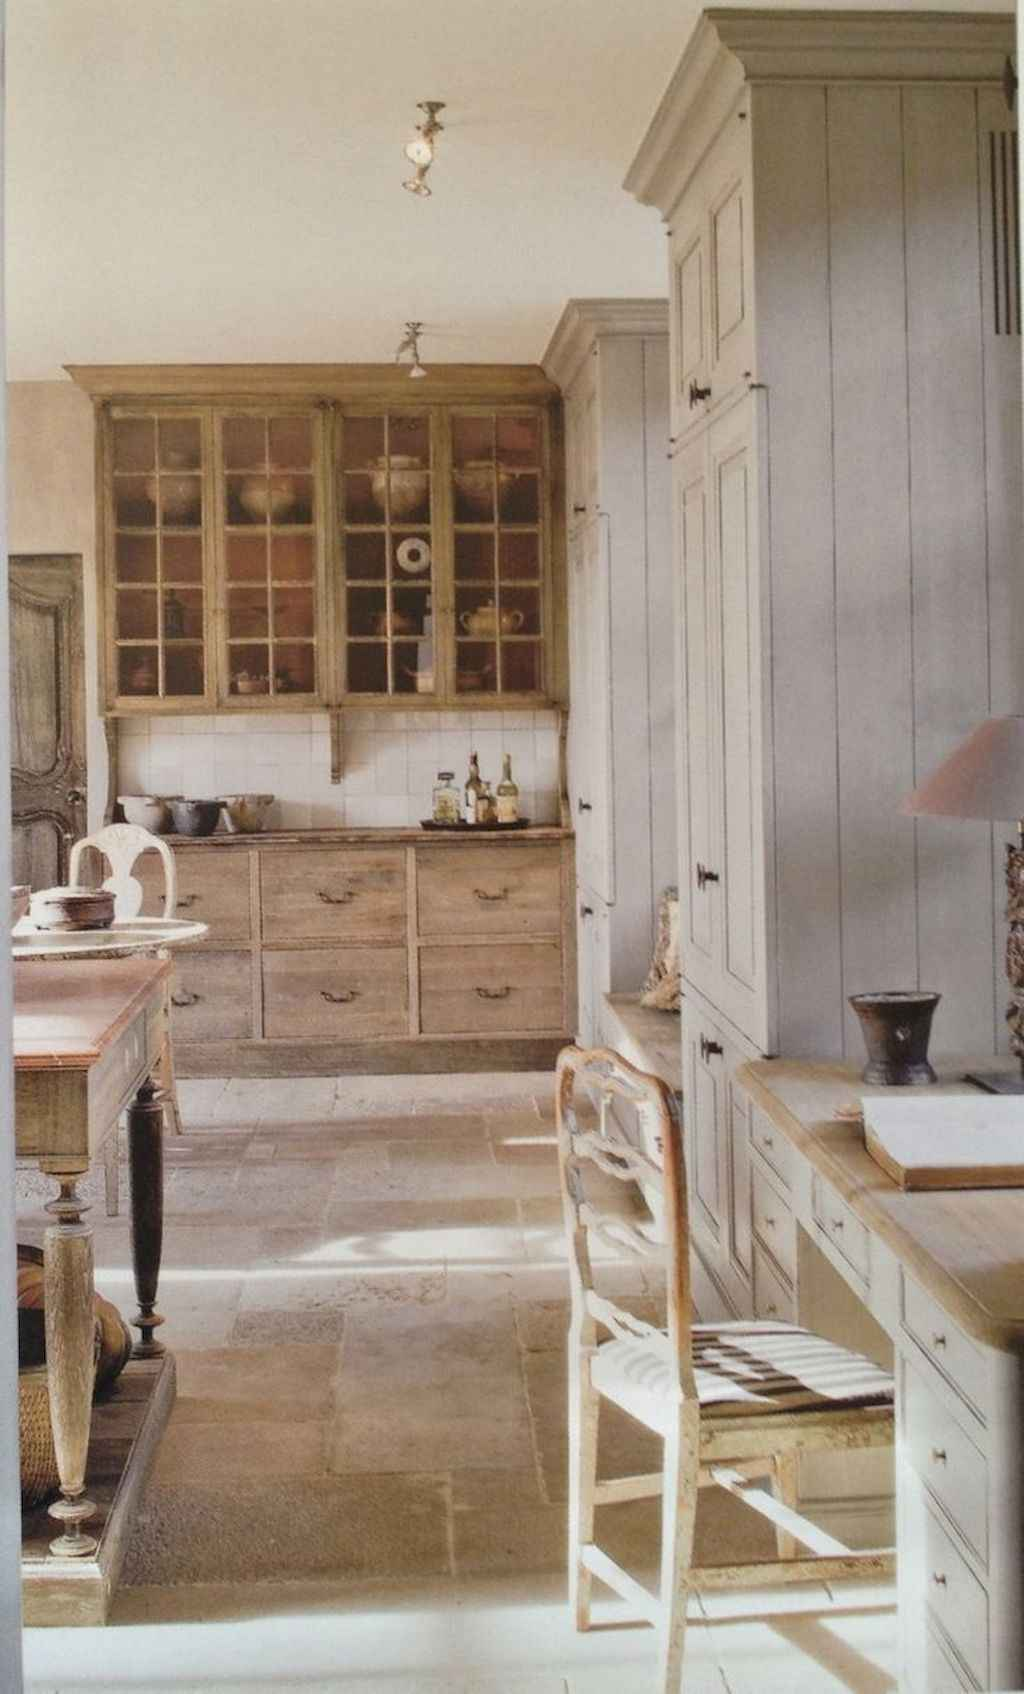 Incredible french country kitchen design ideas (6)